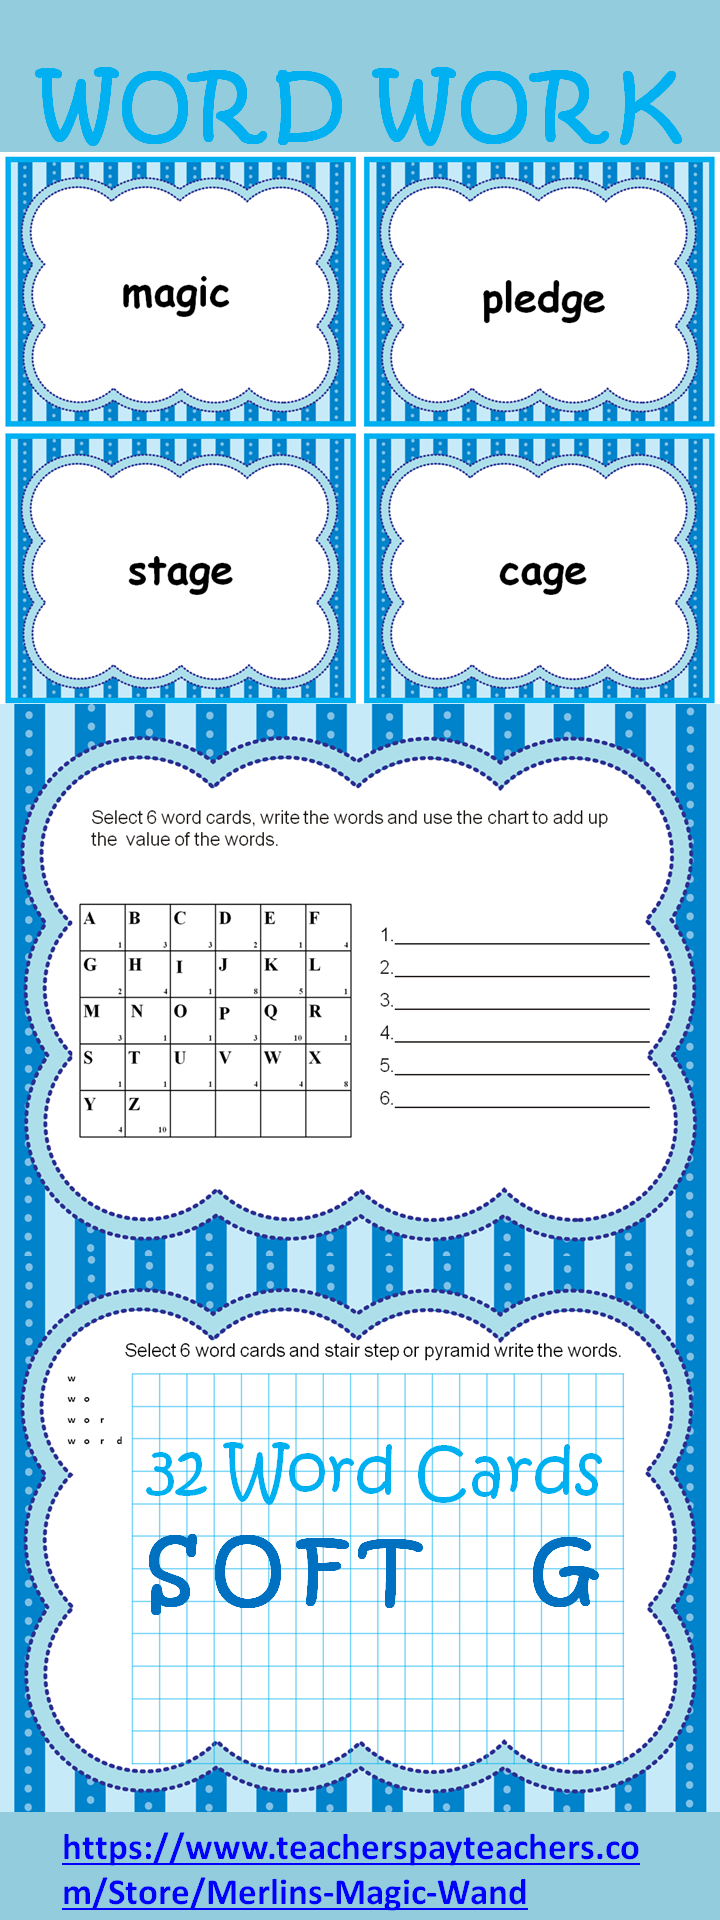 Workbooks soft g and c worksheets : Word Work Activity Center for Words with SOFT G 32 word cards 4 to ...